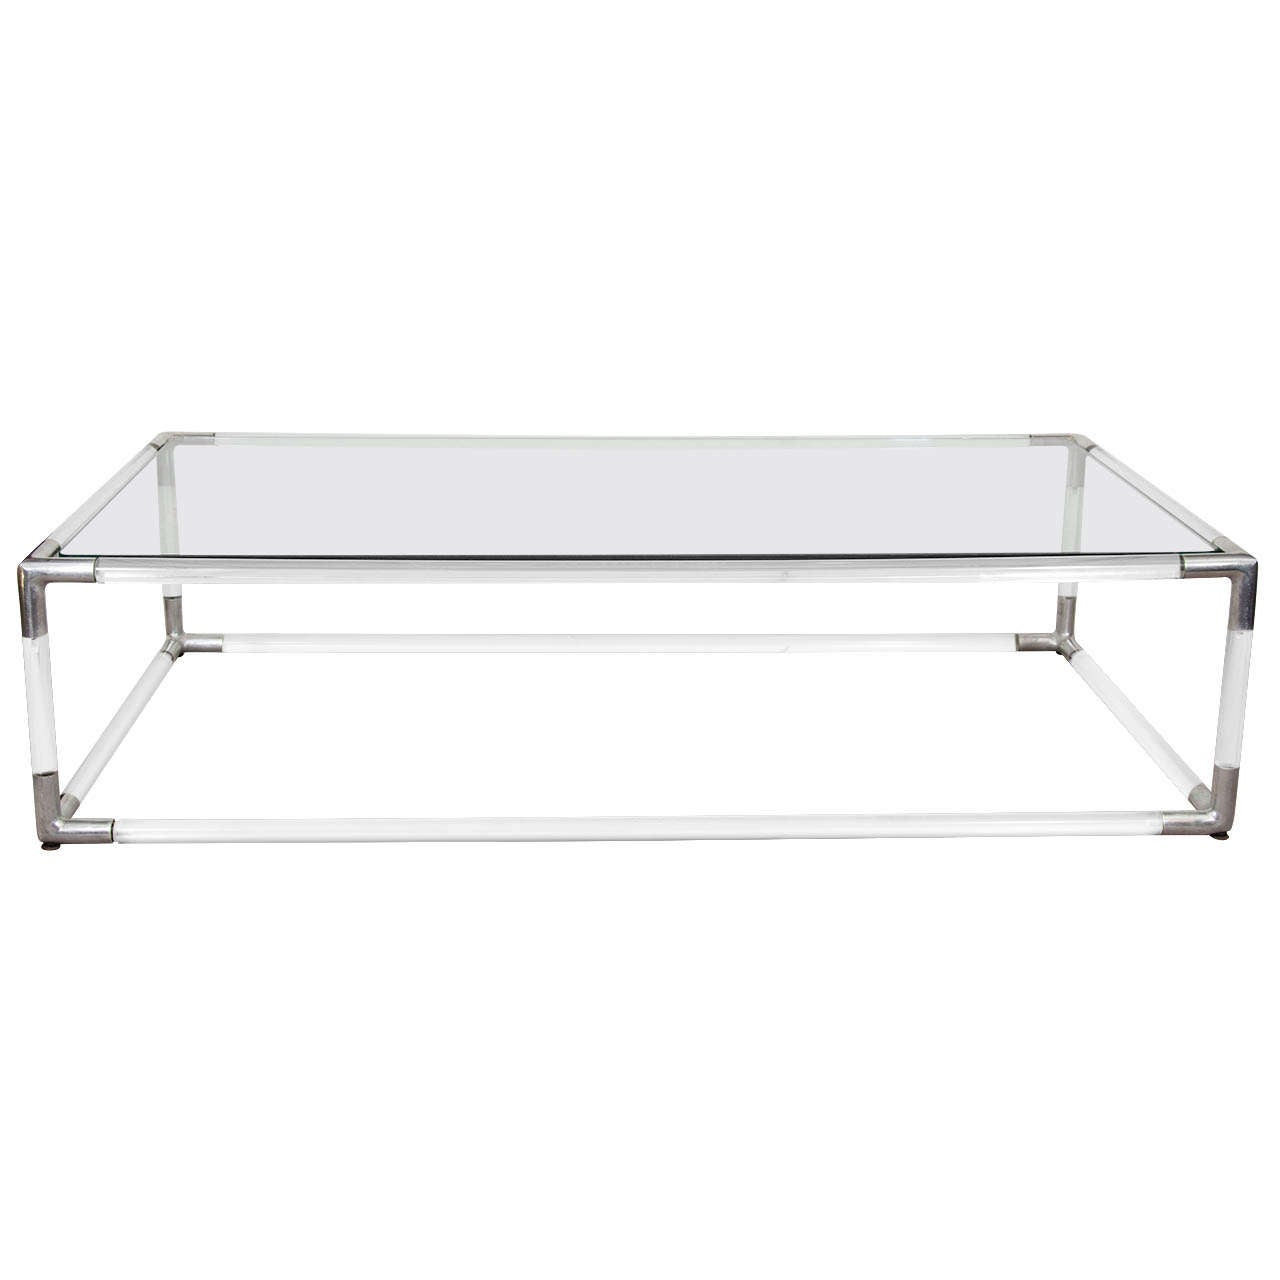 Emerson Rectangular Mod Swivel Coffee Table W Glass: Mid Century Lucite And Chrome Rectangular Coffee Table W